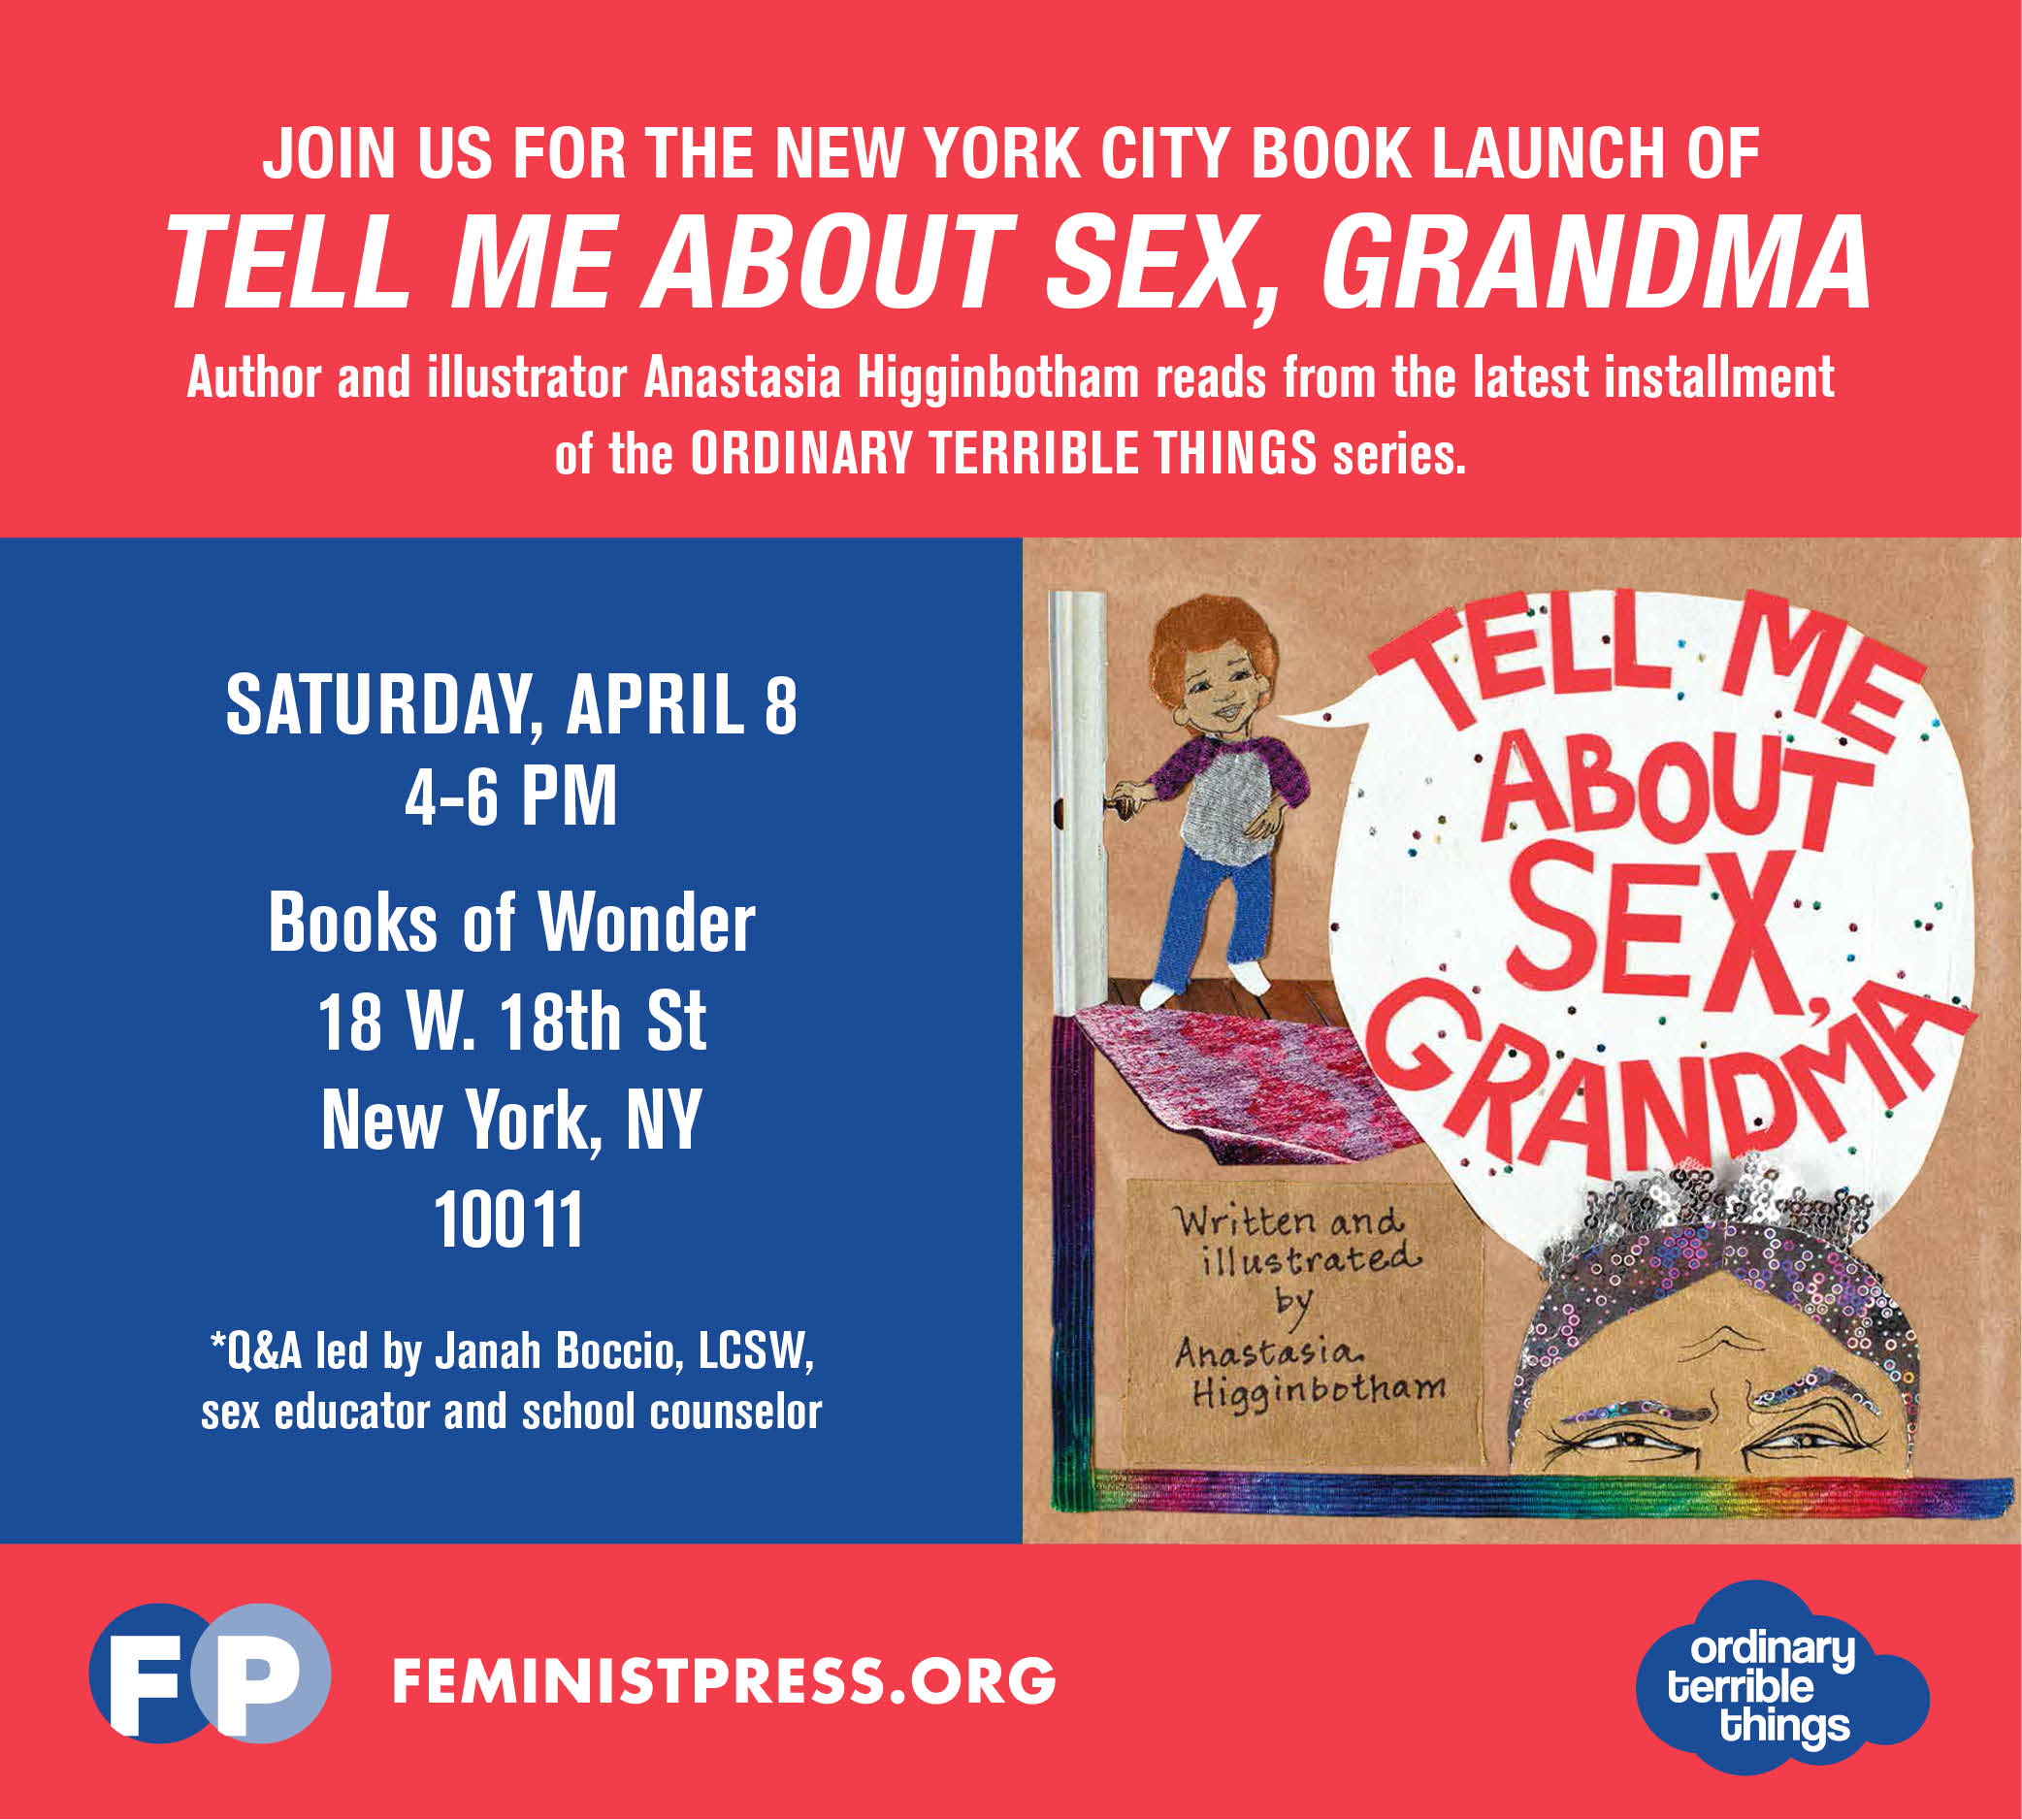 tell me about sex nyc launch